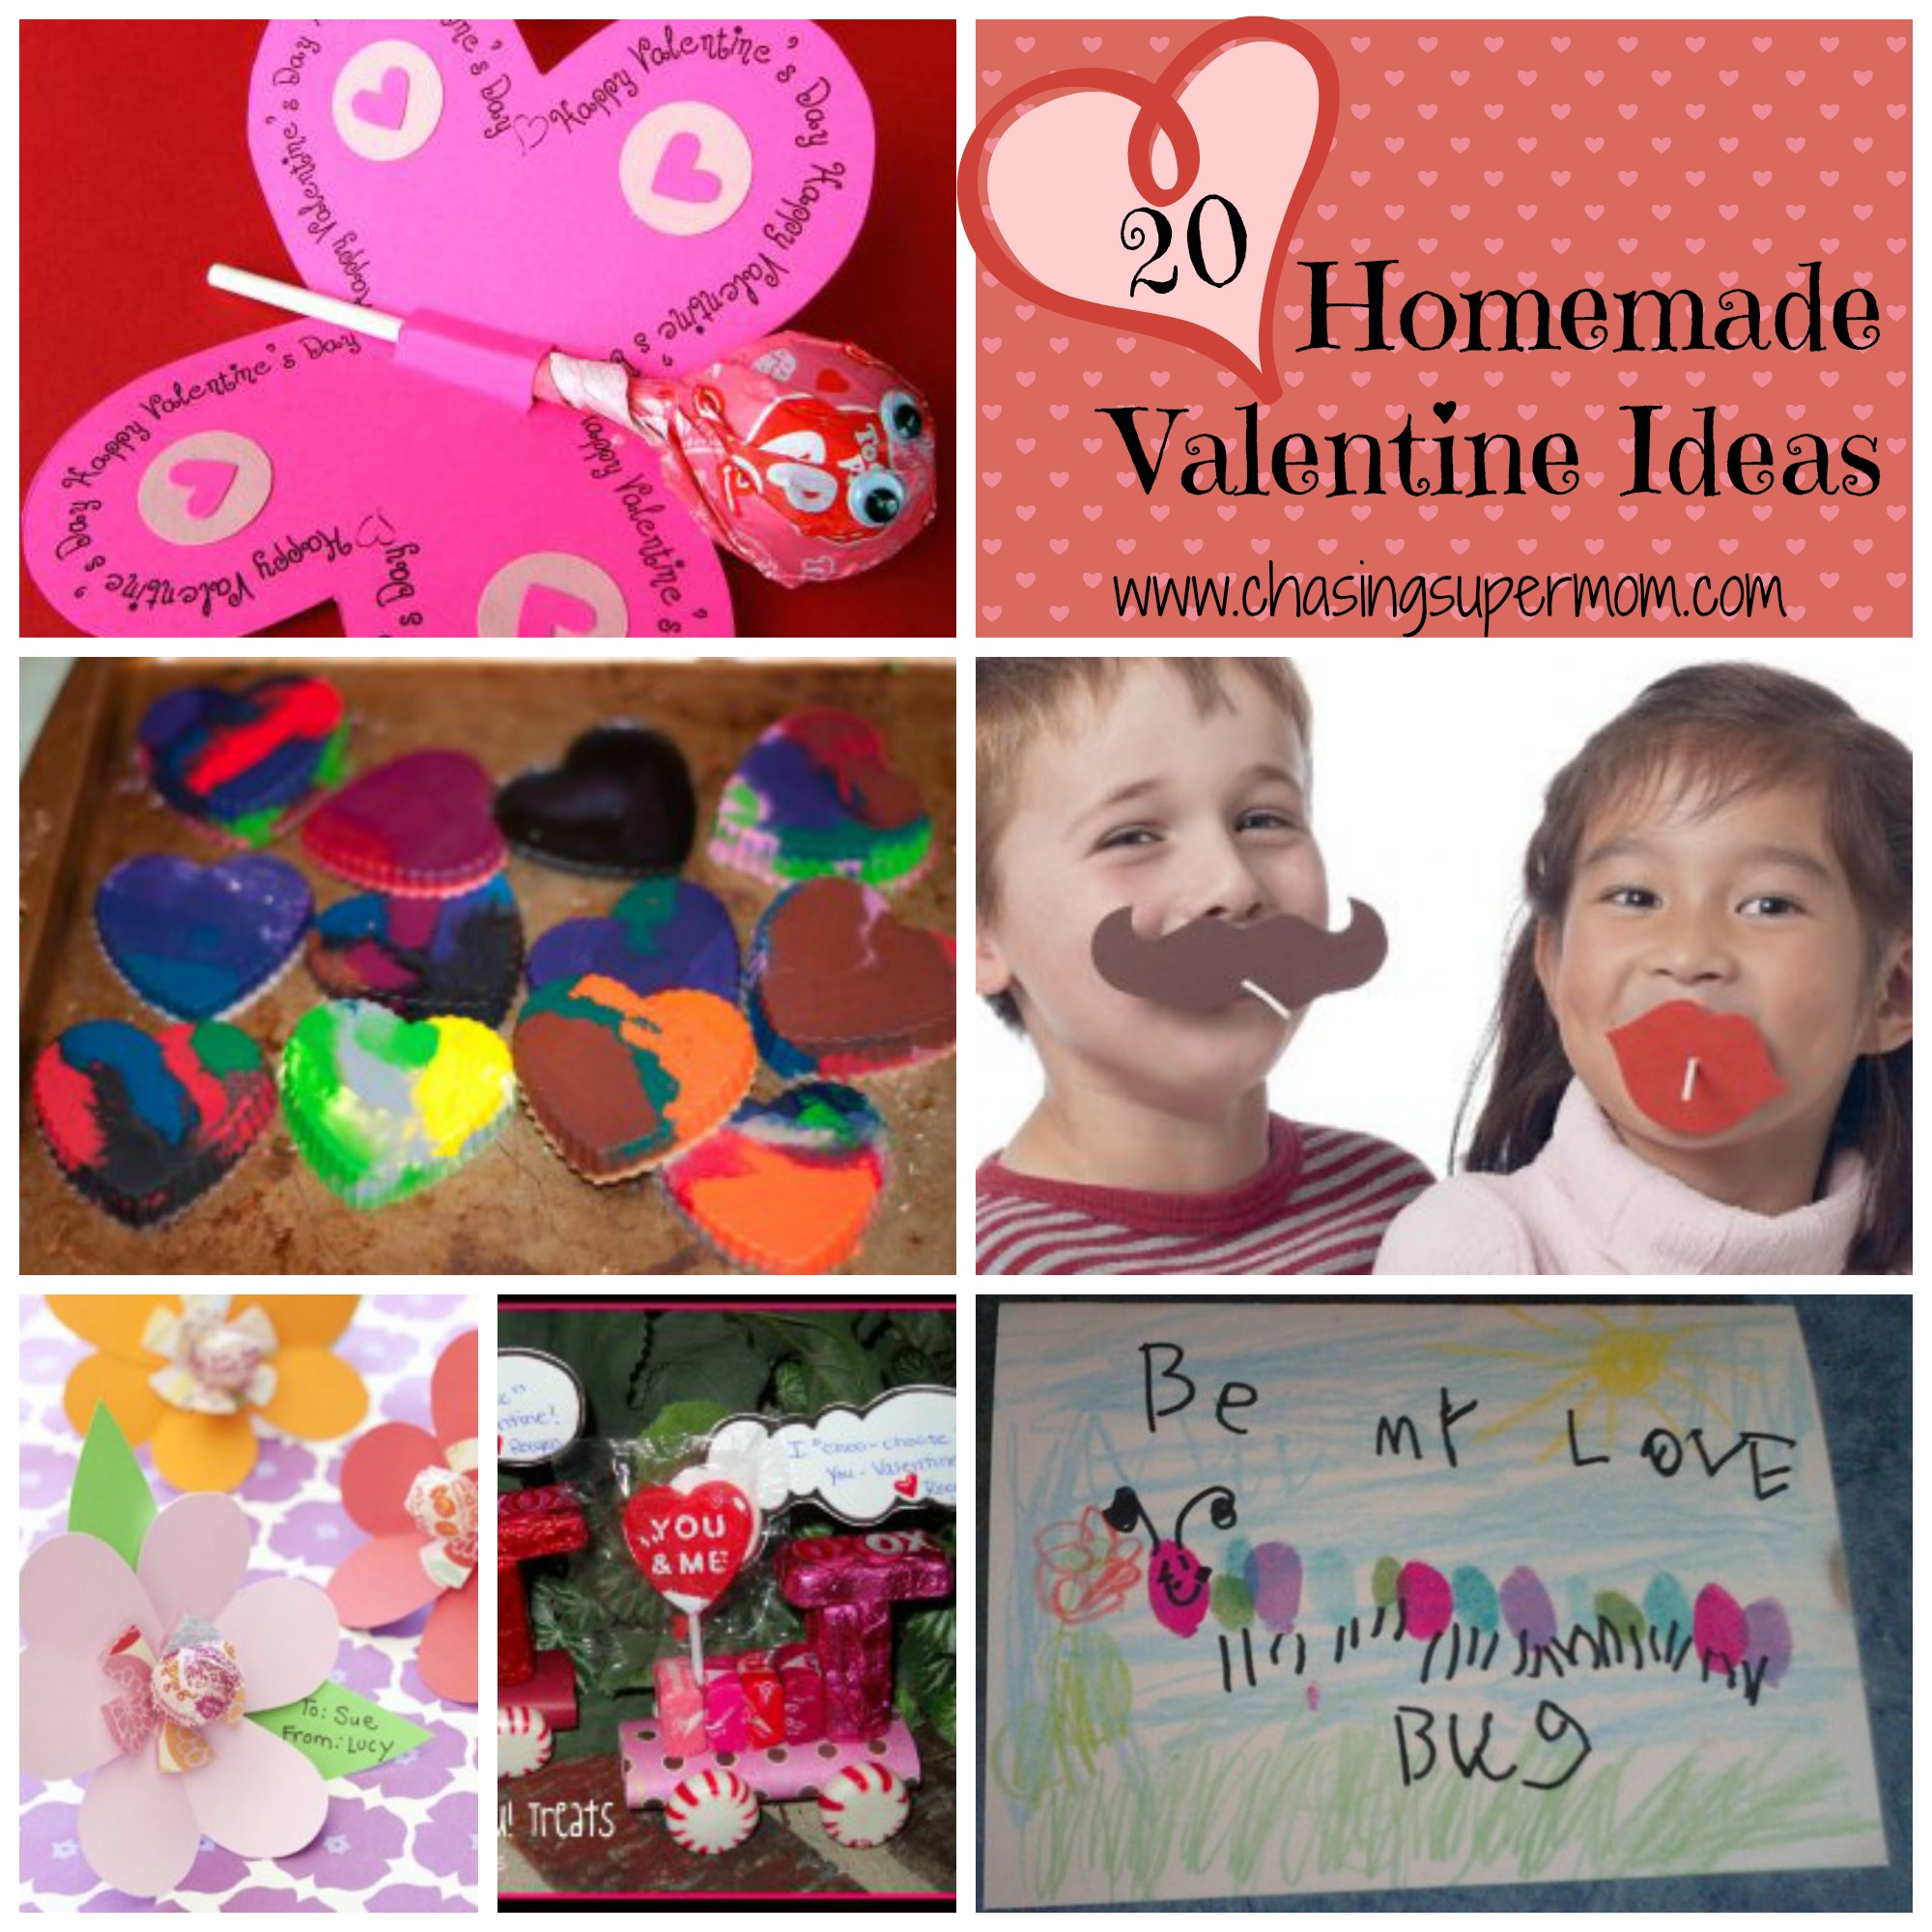 20 Homemade Valentine Ideas